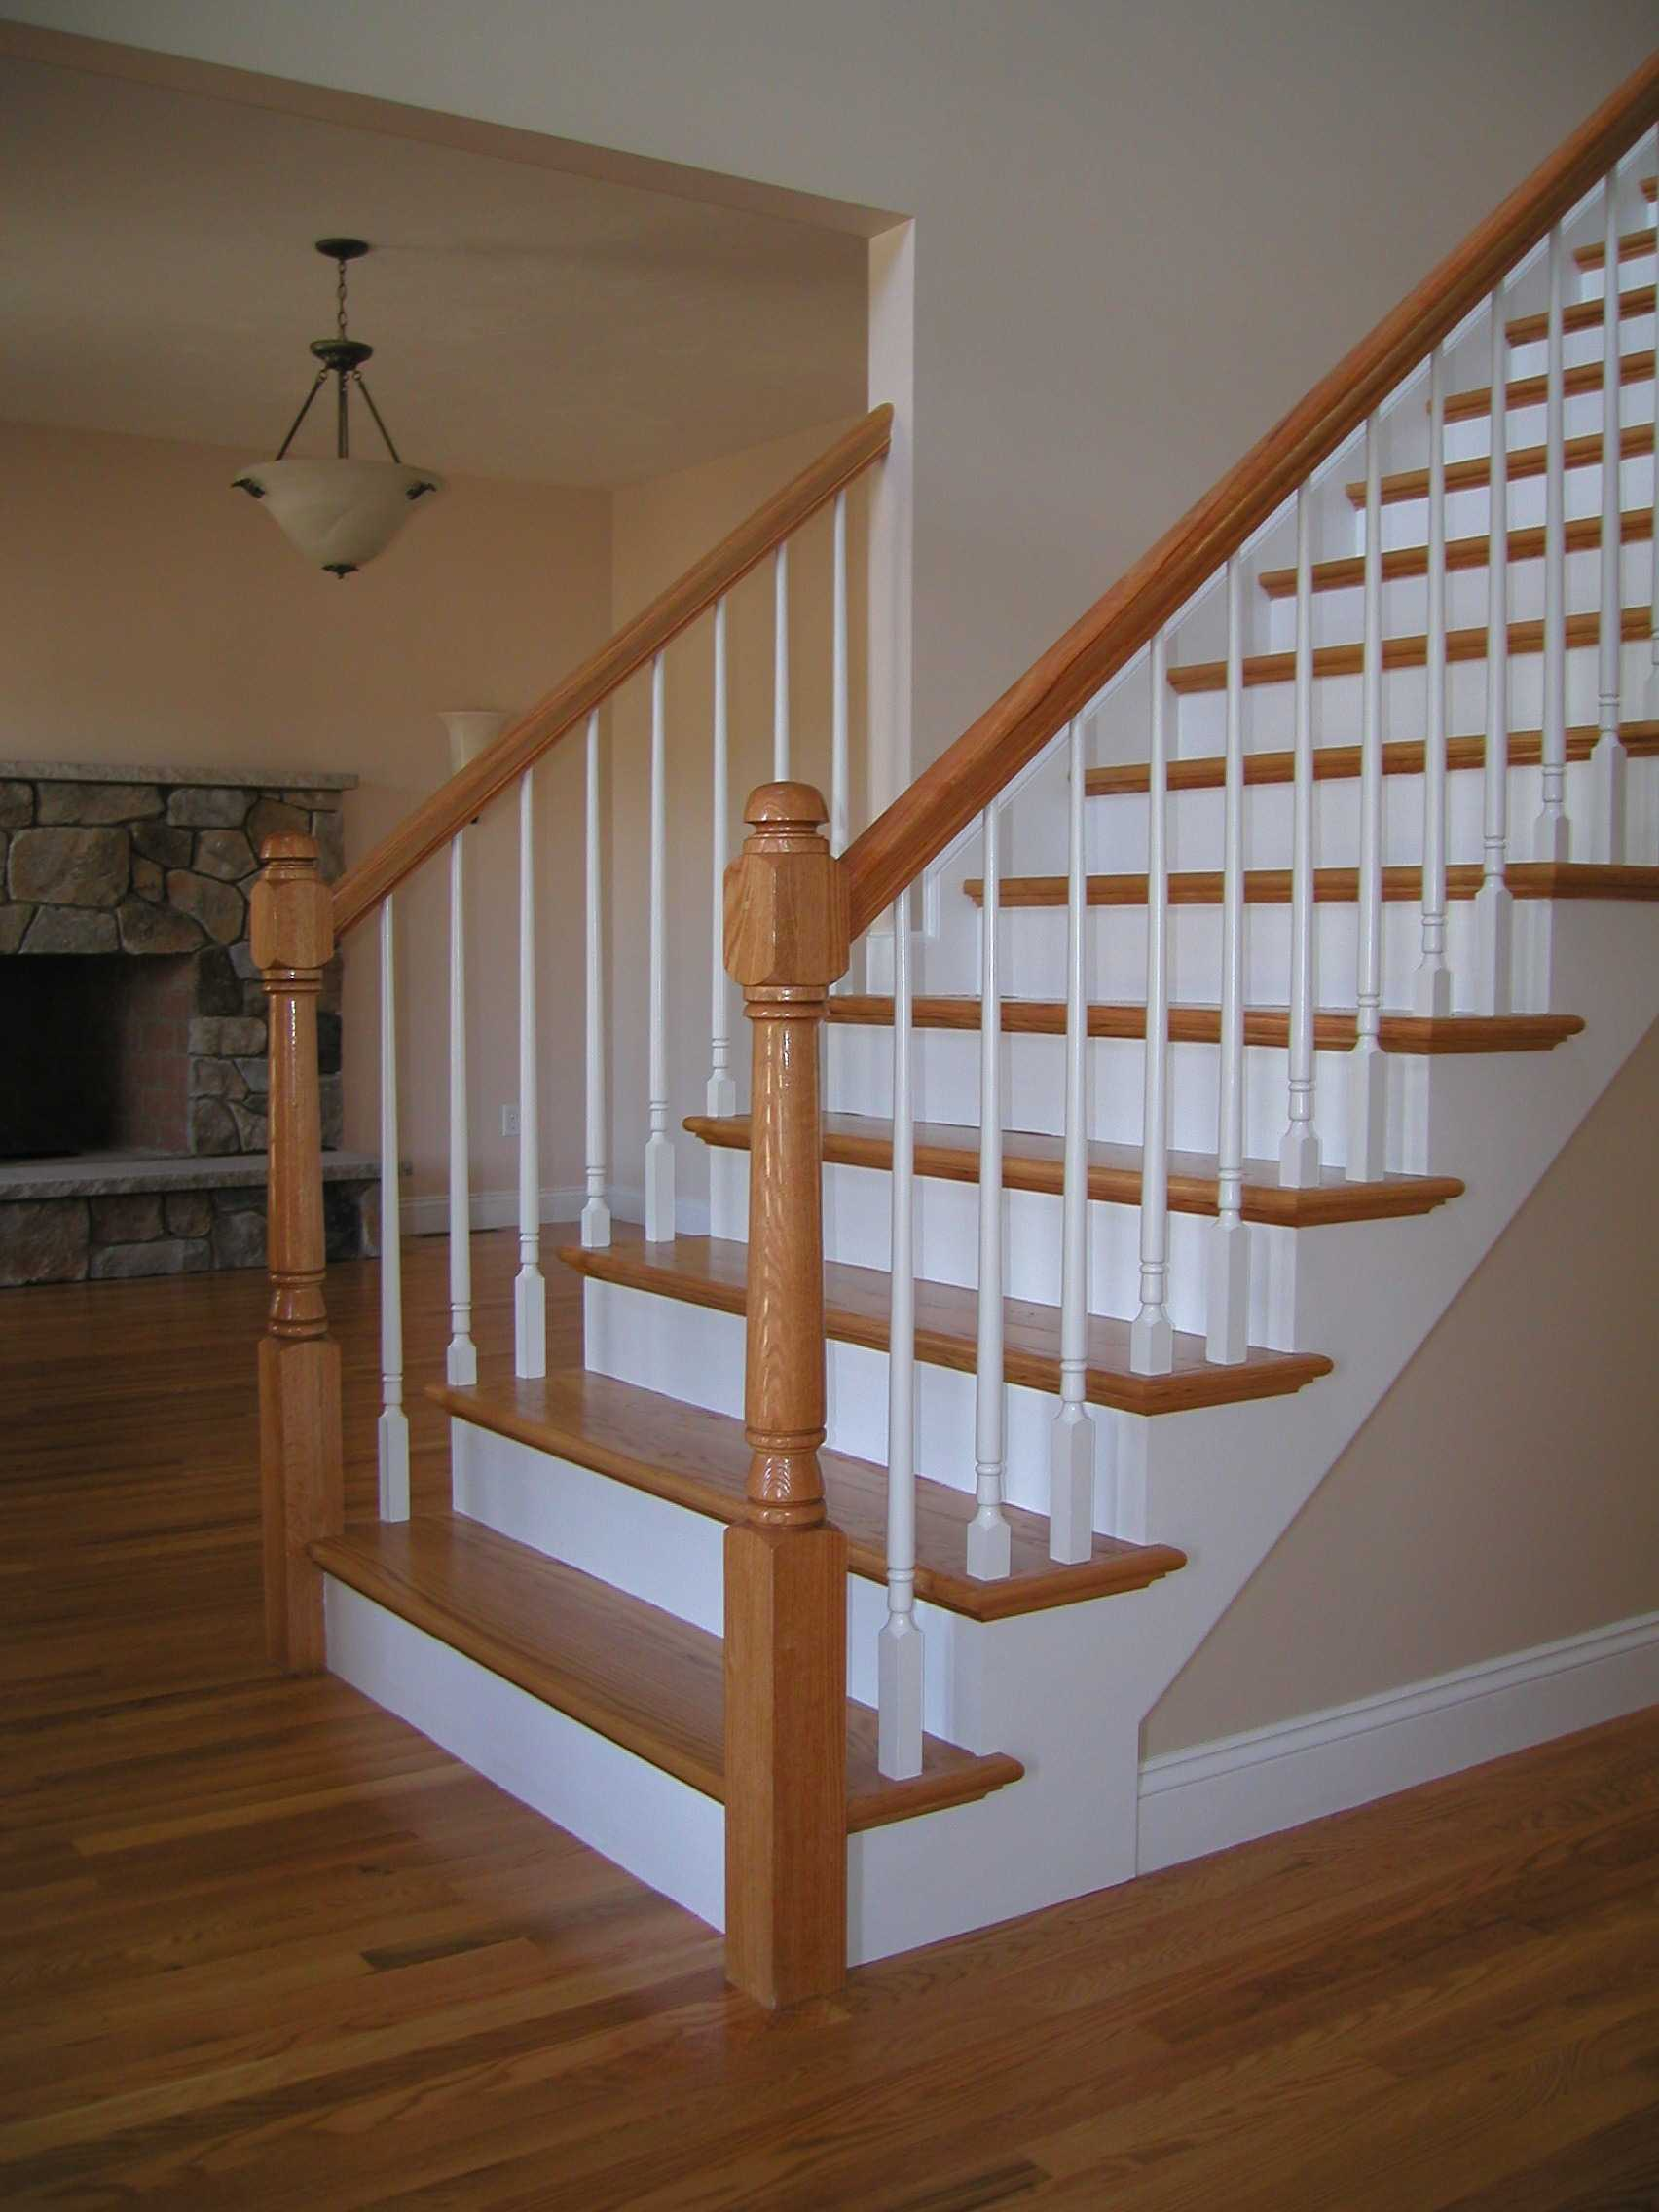 Wood Stairs Designed Built Installed Repaired NYC New York City NY Brooklyn  Manhattan Staircase Staircases Stair Case Stair Cases Stairs Wood Wooden ...